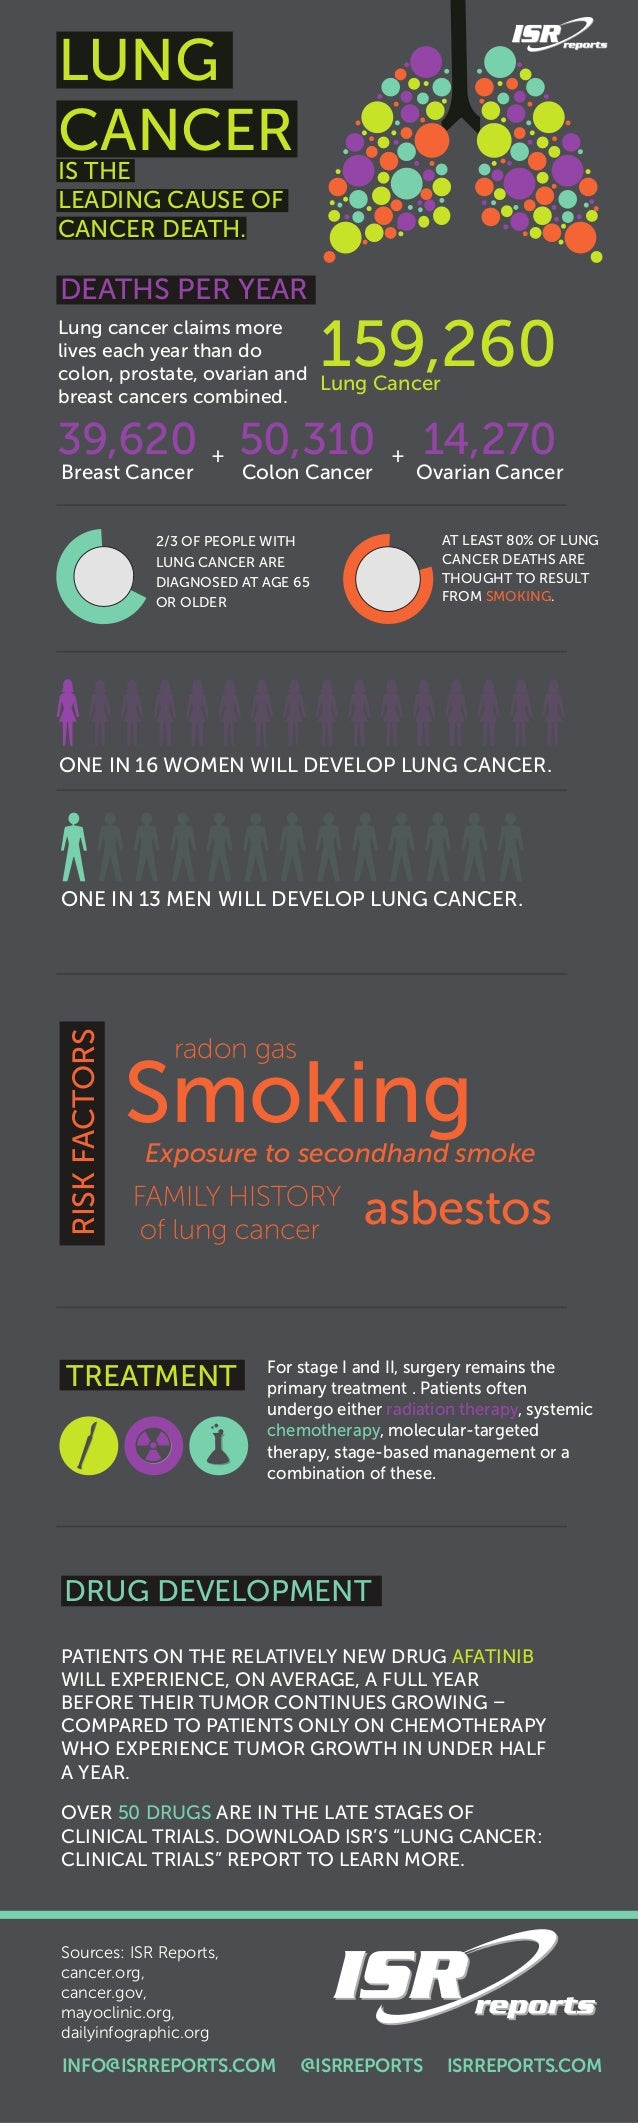 [Infographic] Lung Cancer